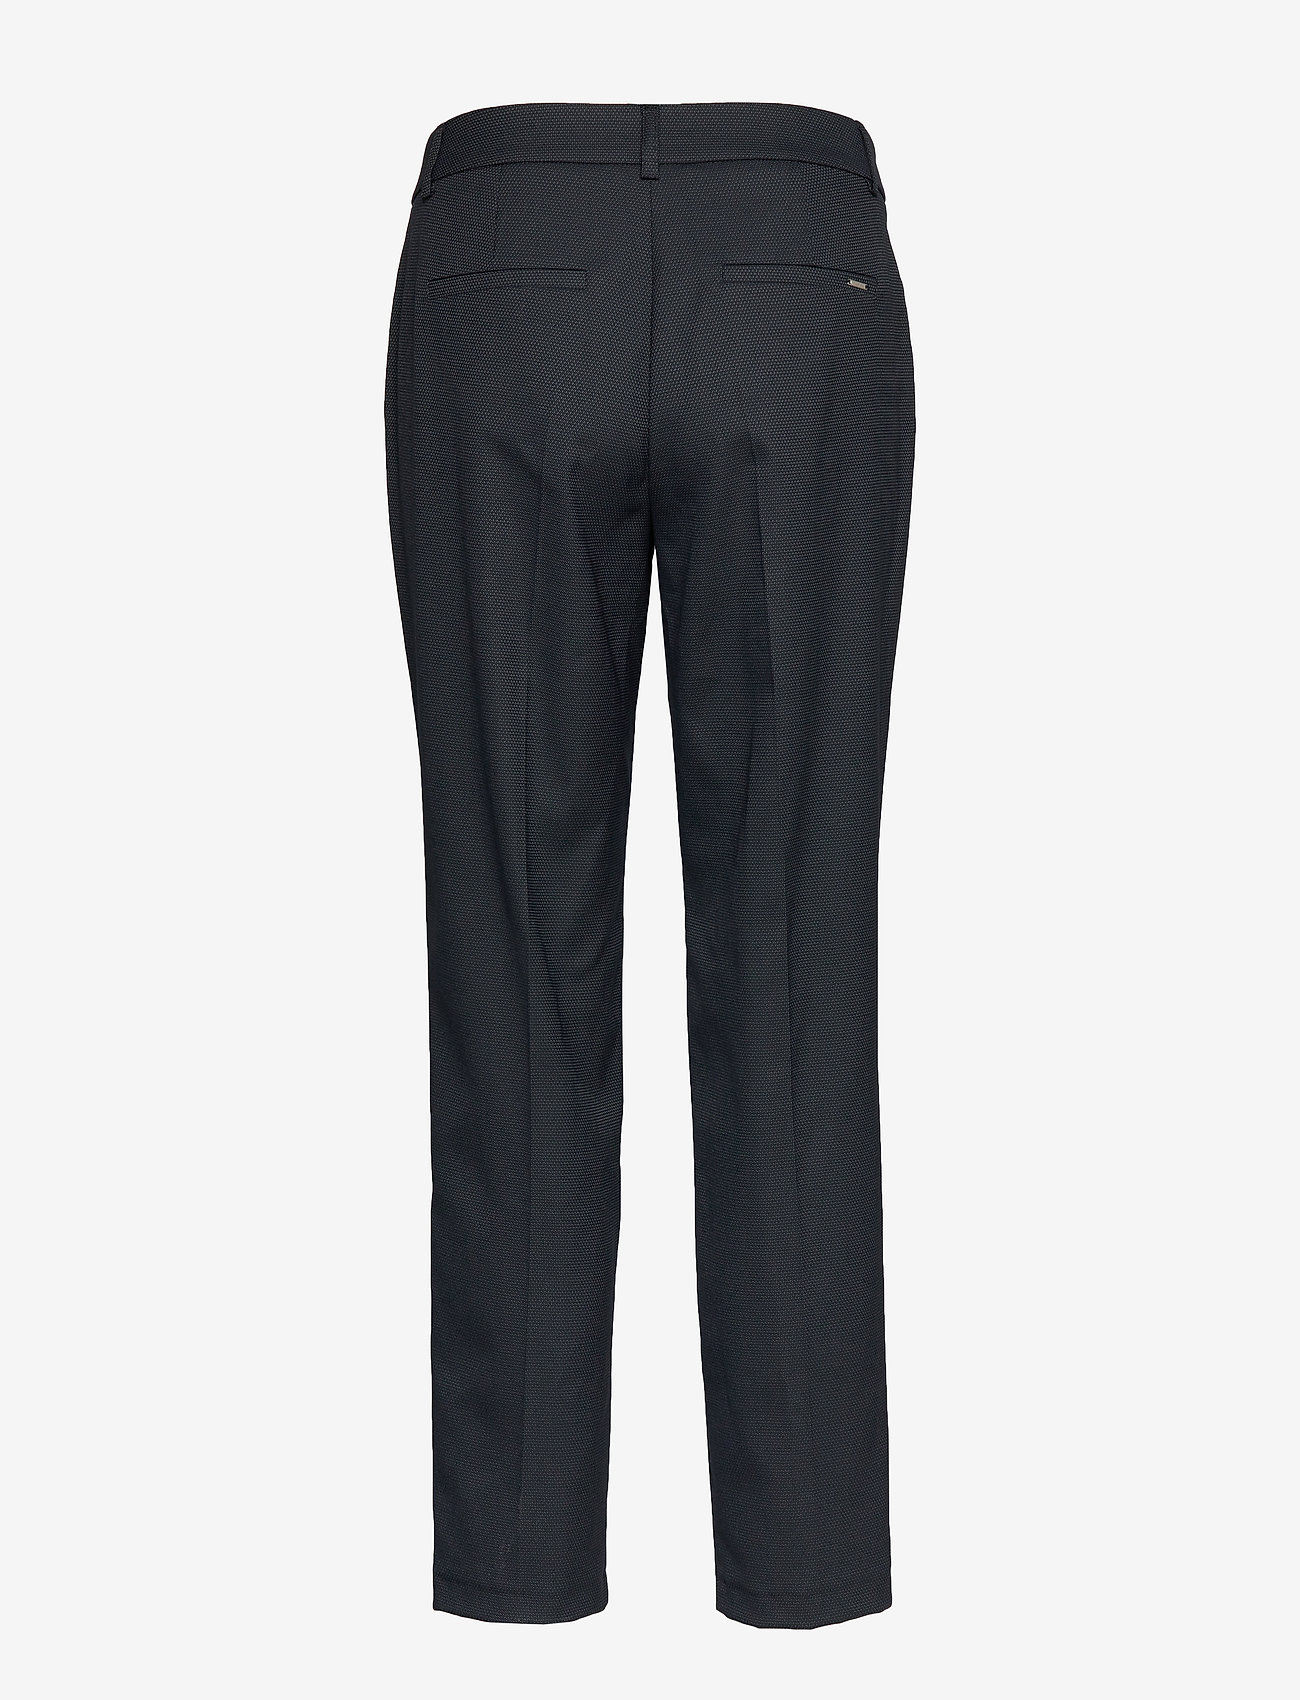 Taifun Crop Leisure Trouser - Trousers